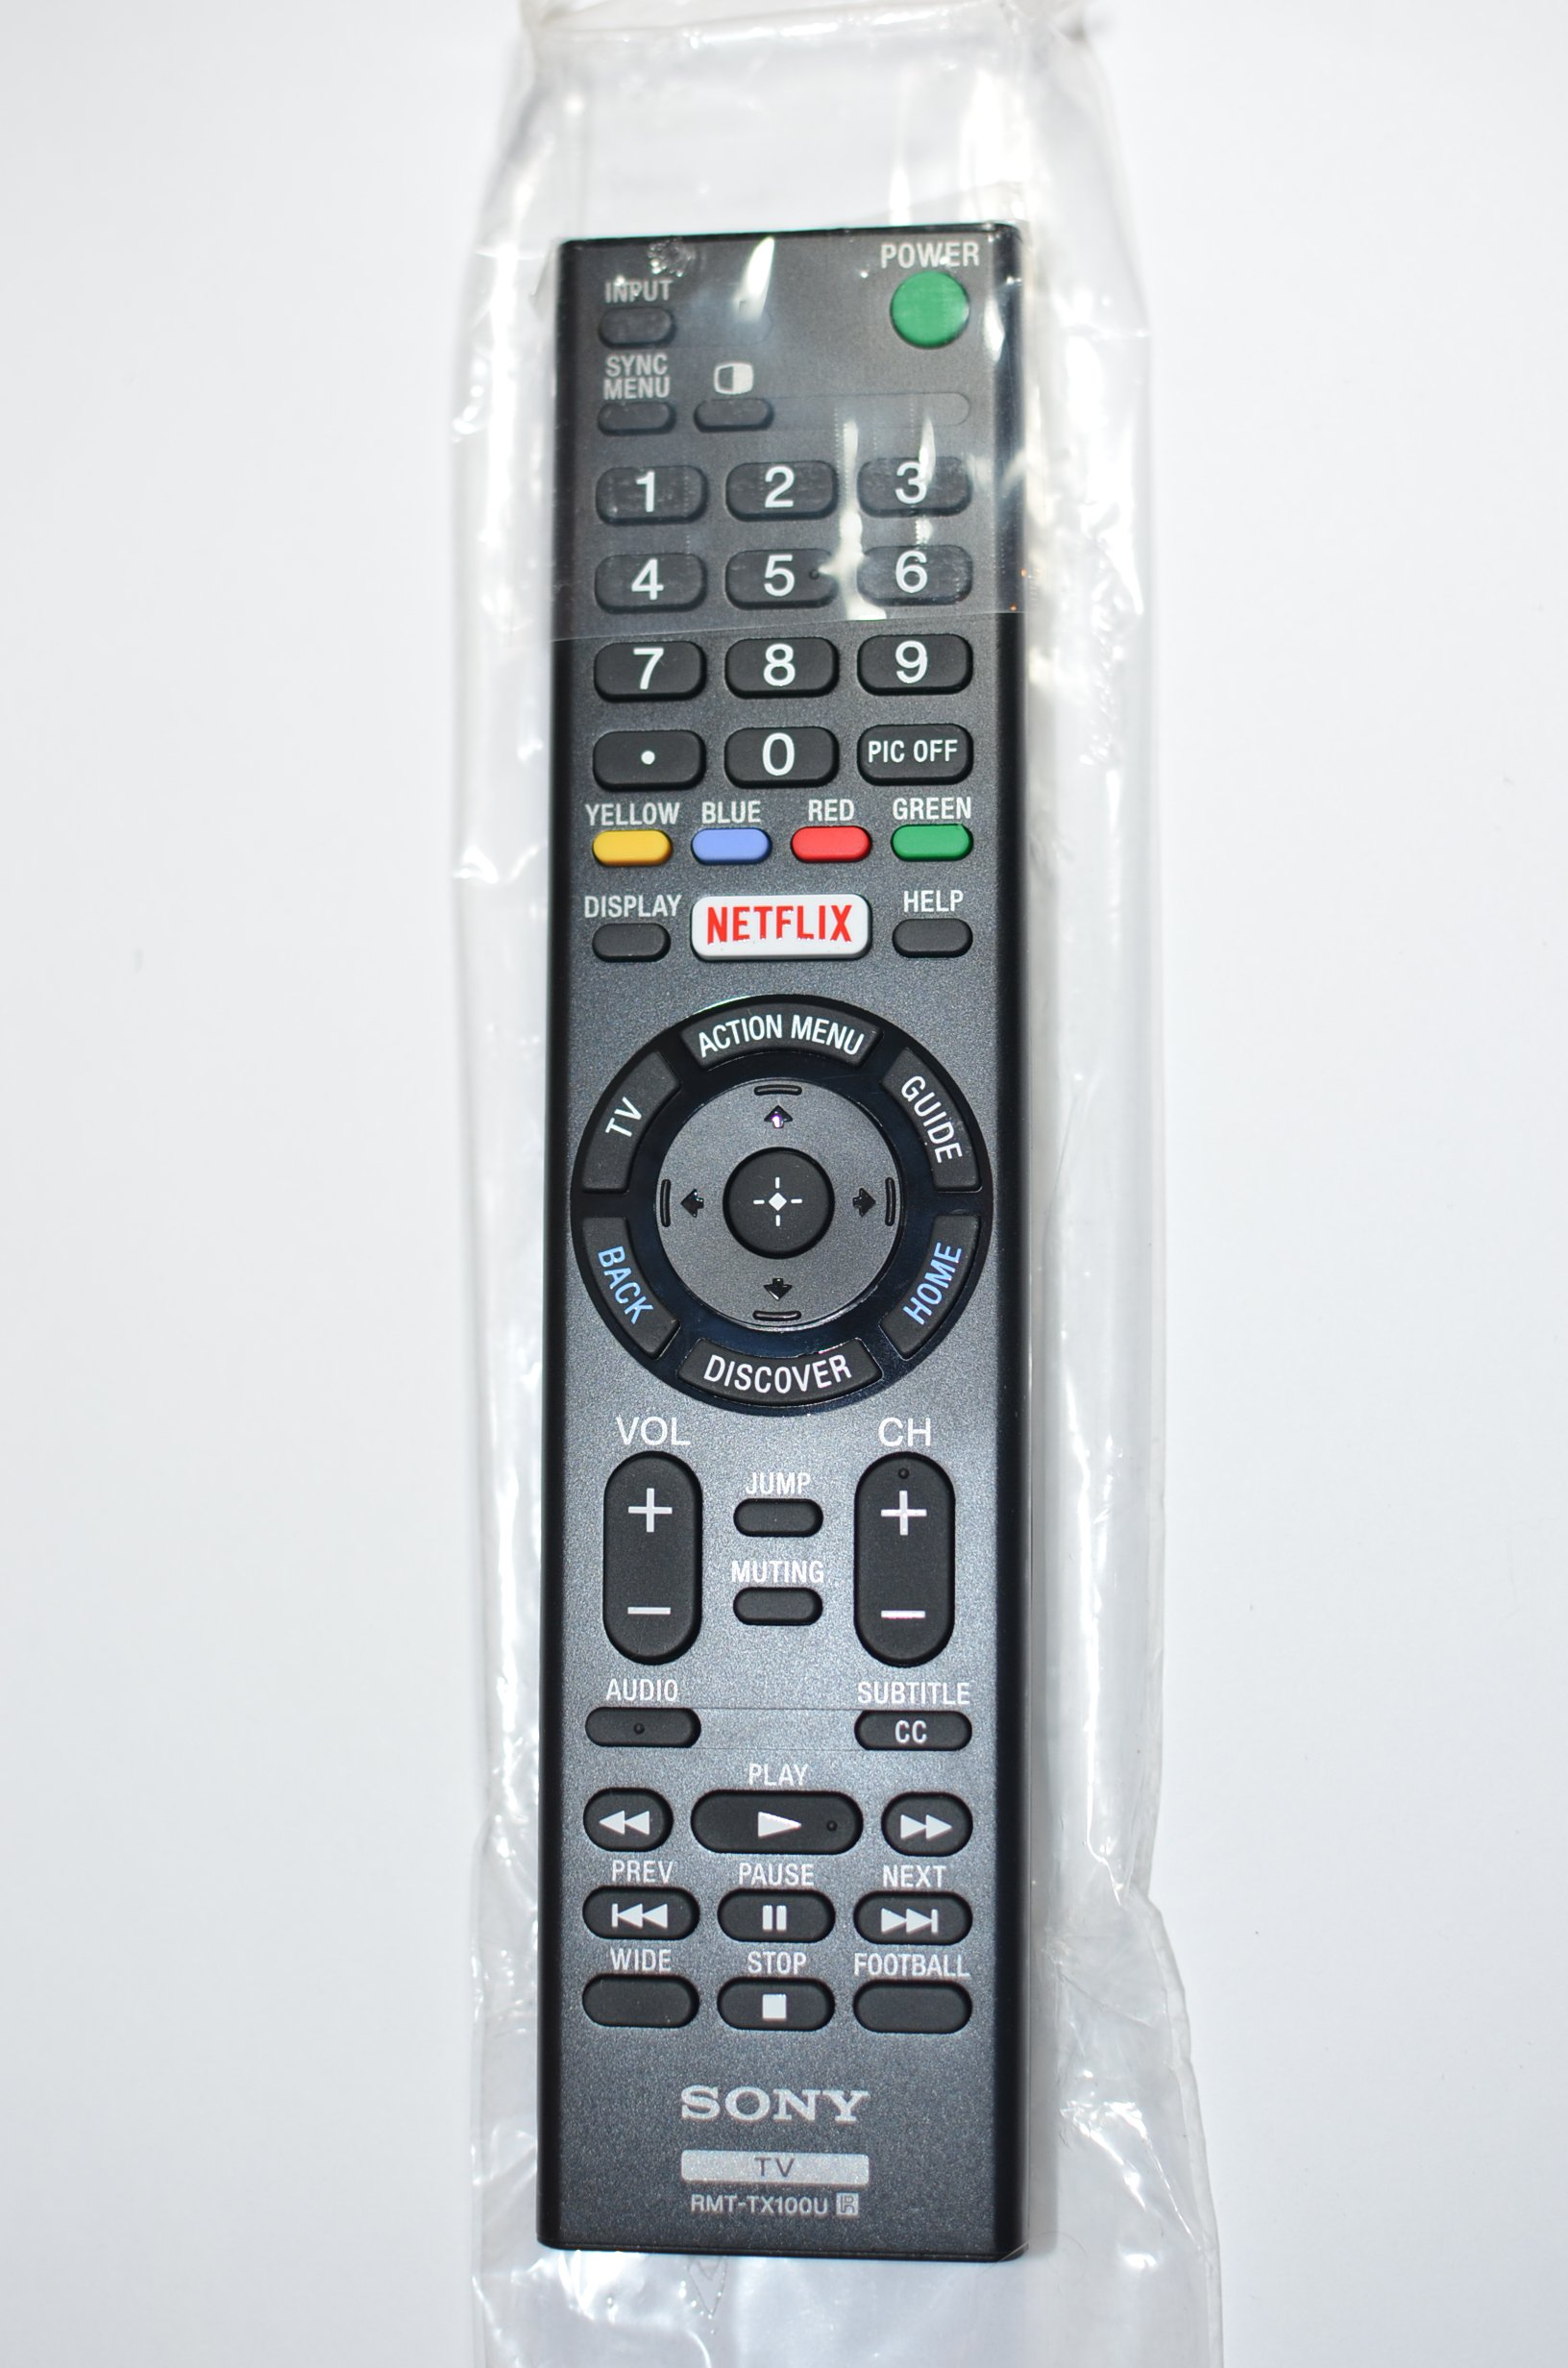 Sony LED Smart TV Remote Control RMT-TX100U by Sony